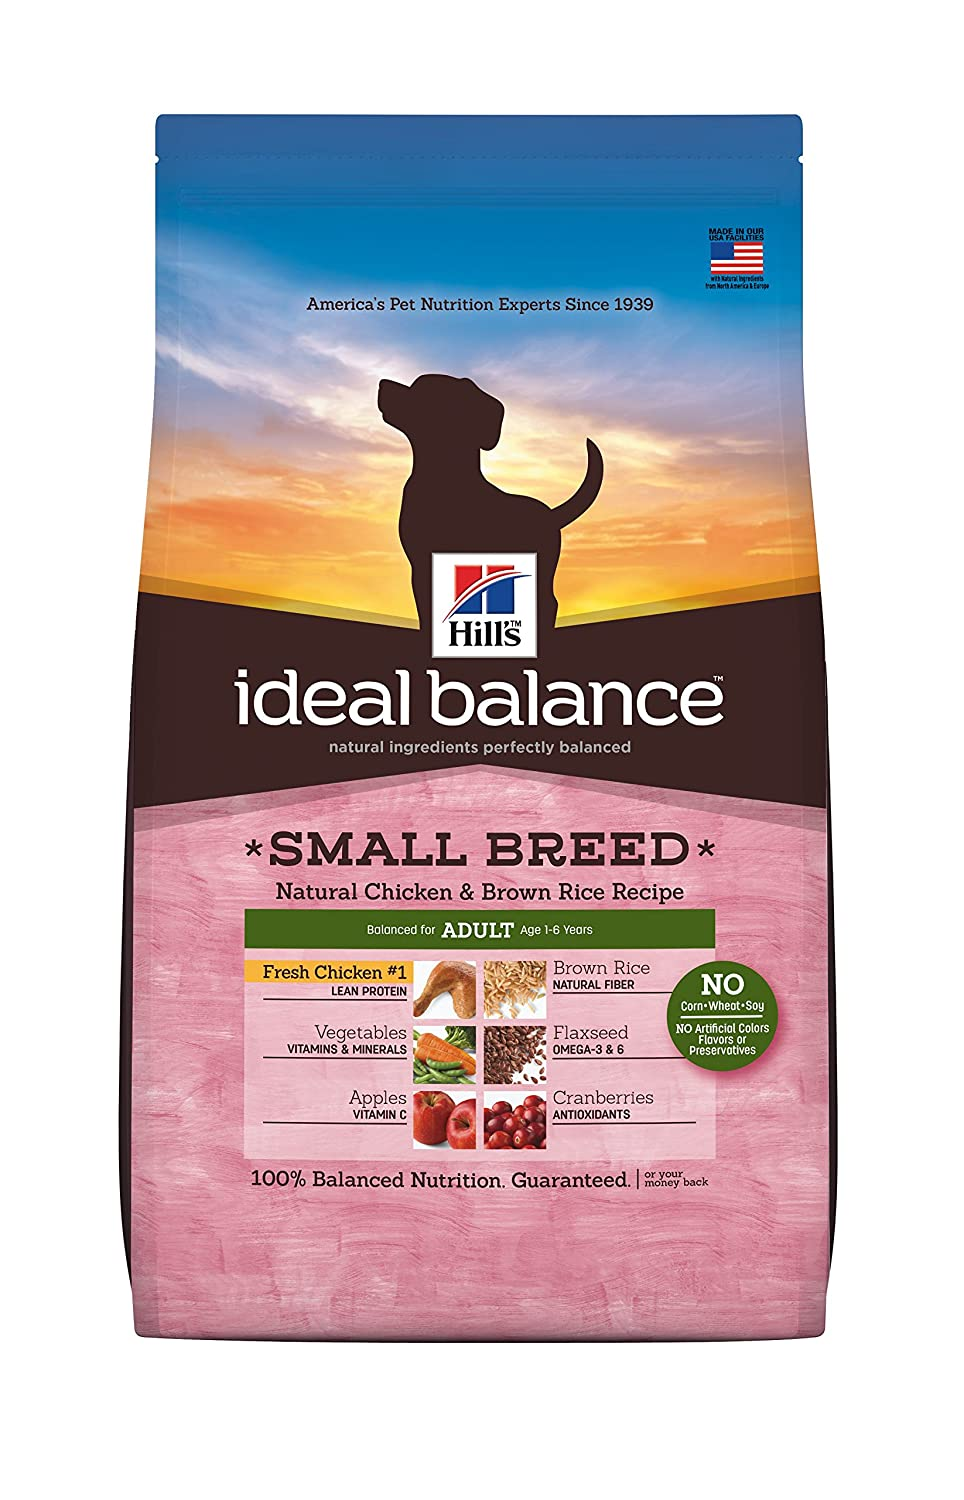 Best dog food for yorkies 2018 happy pets now 5 hills ideal balance natural chicken brown rice recipe adult small breed dog nvjuhfo Images